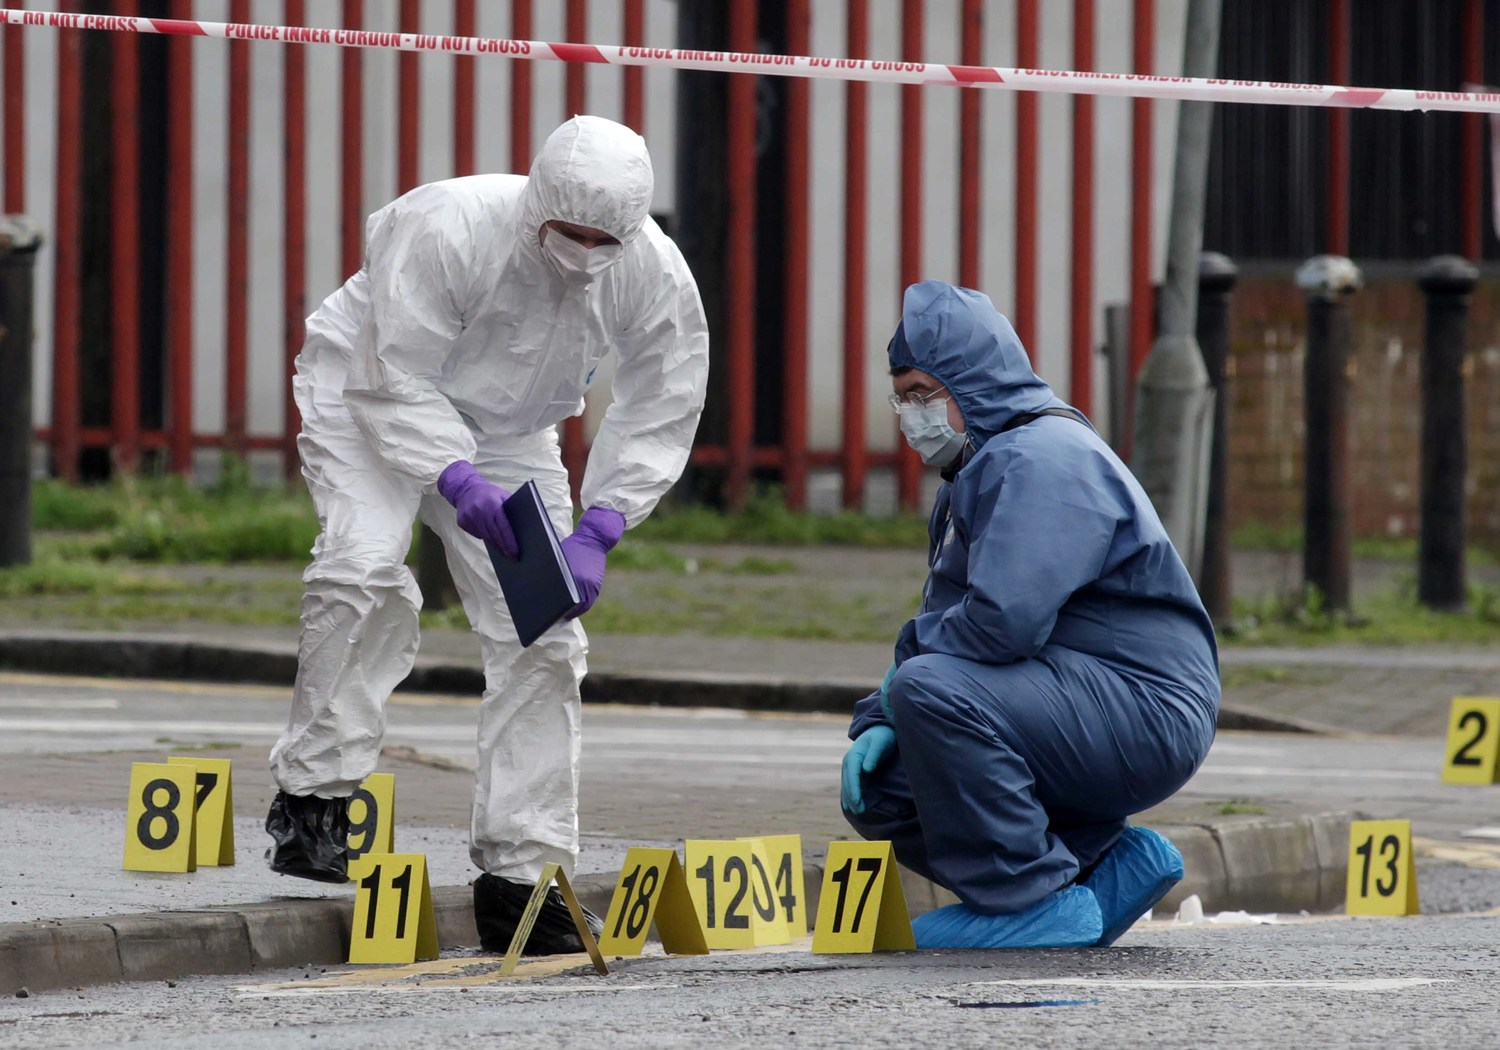 14,413 crime scene profiles are stored on the DNA database